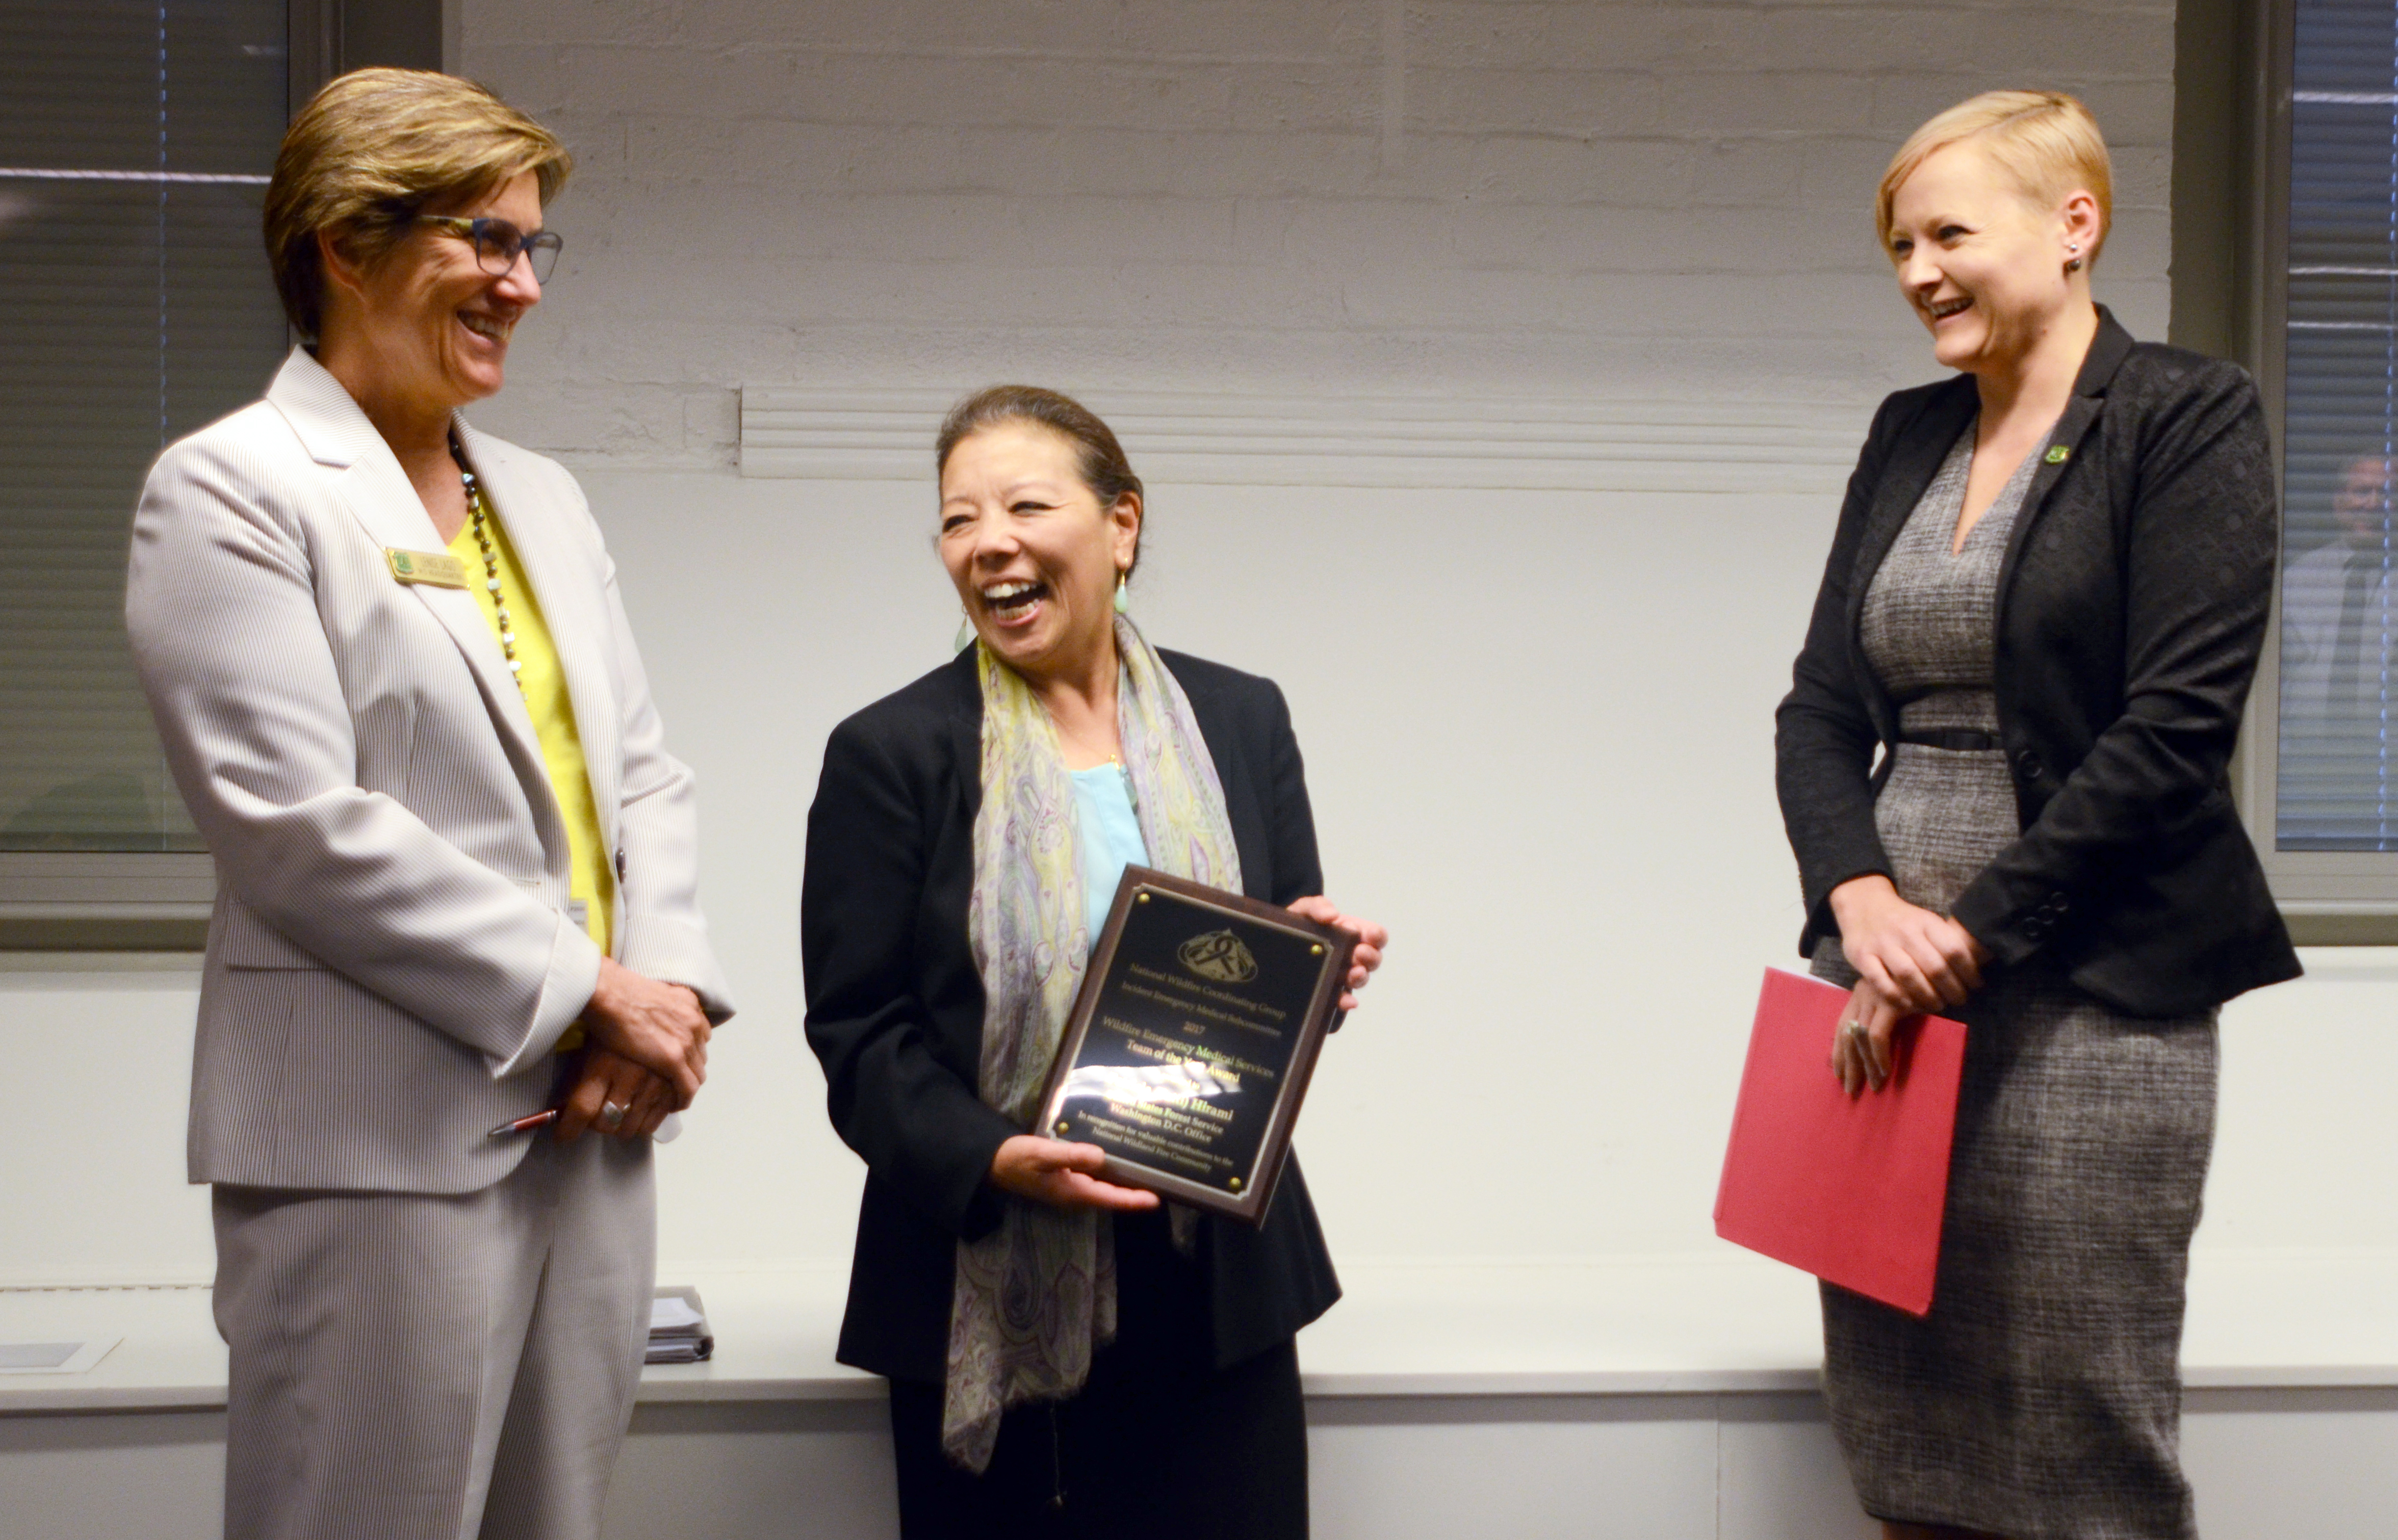 Photo: Lenise Lago, Patti Hirami (holding plaque) and Jaelith Hall-Rivera stand at the front of a room.